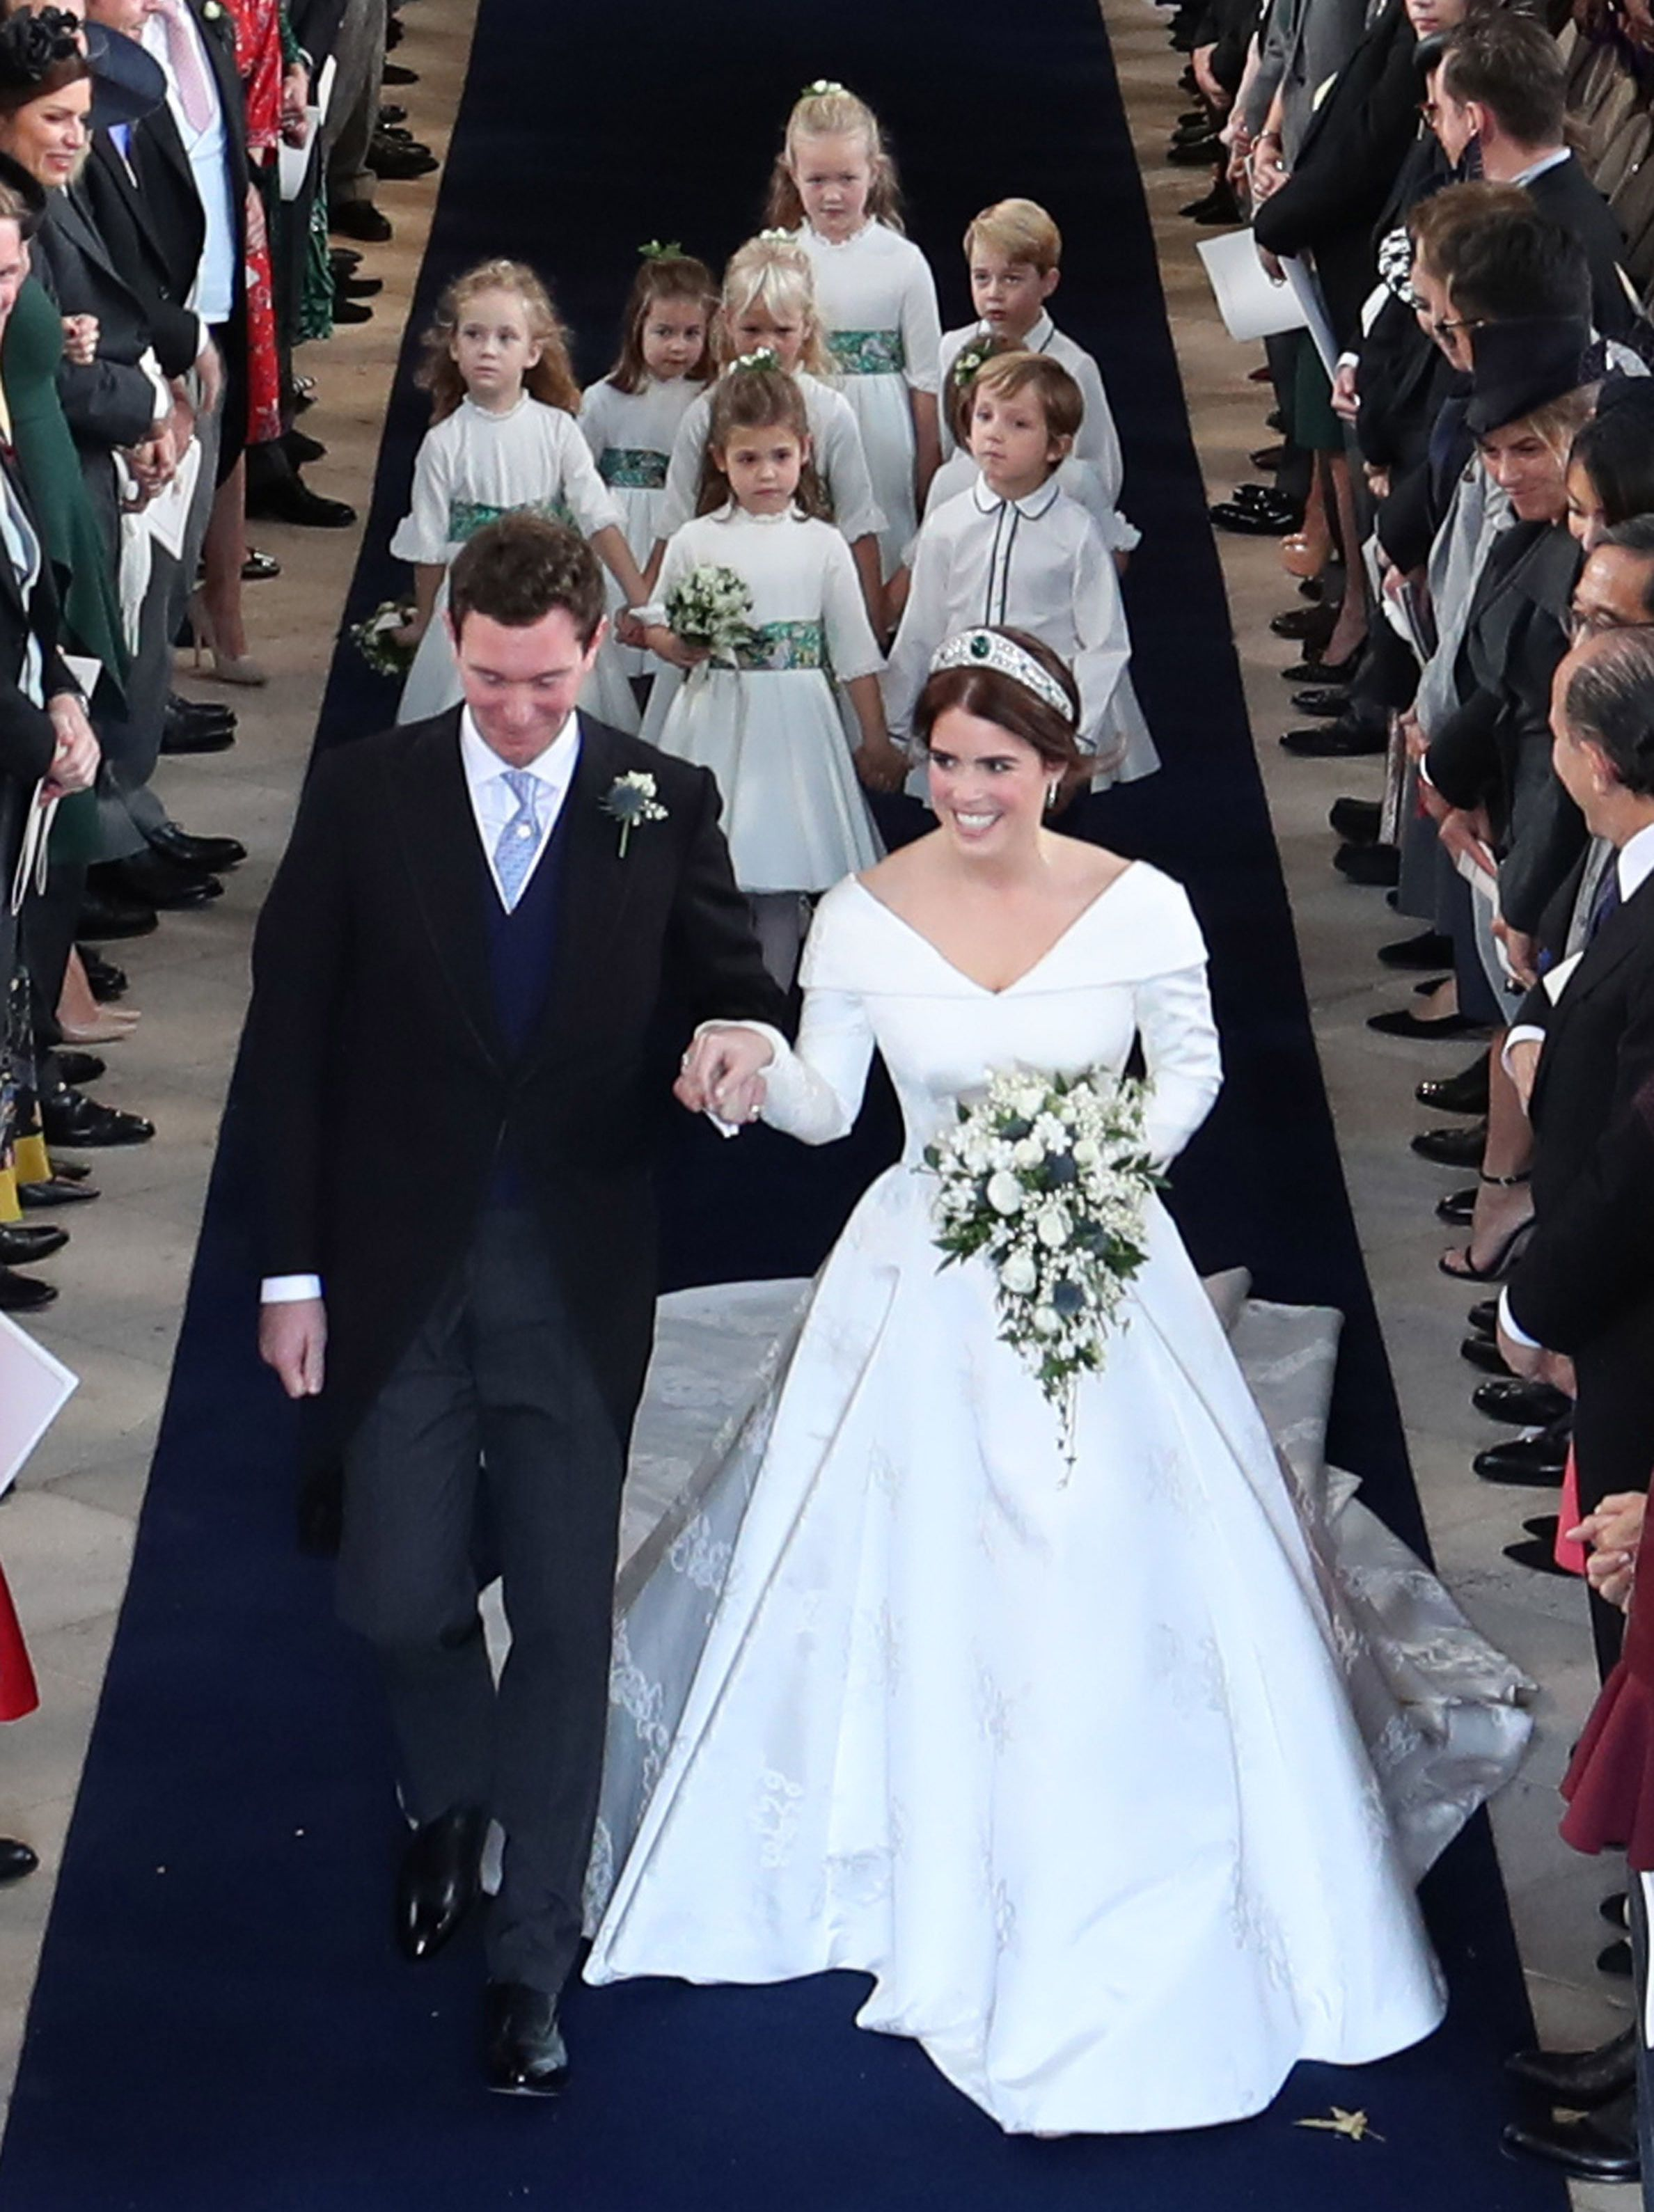 Princess Eugenie's Walk Down the Aisle Was a 'Seismic